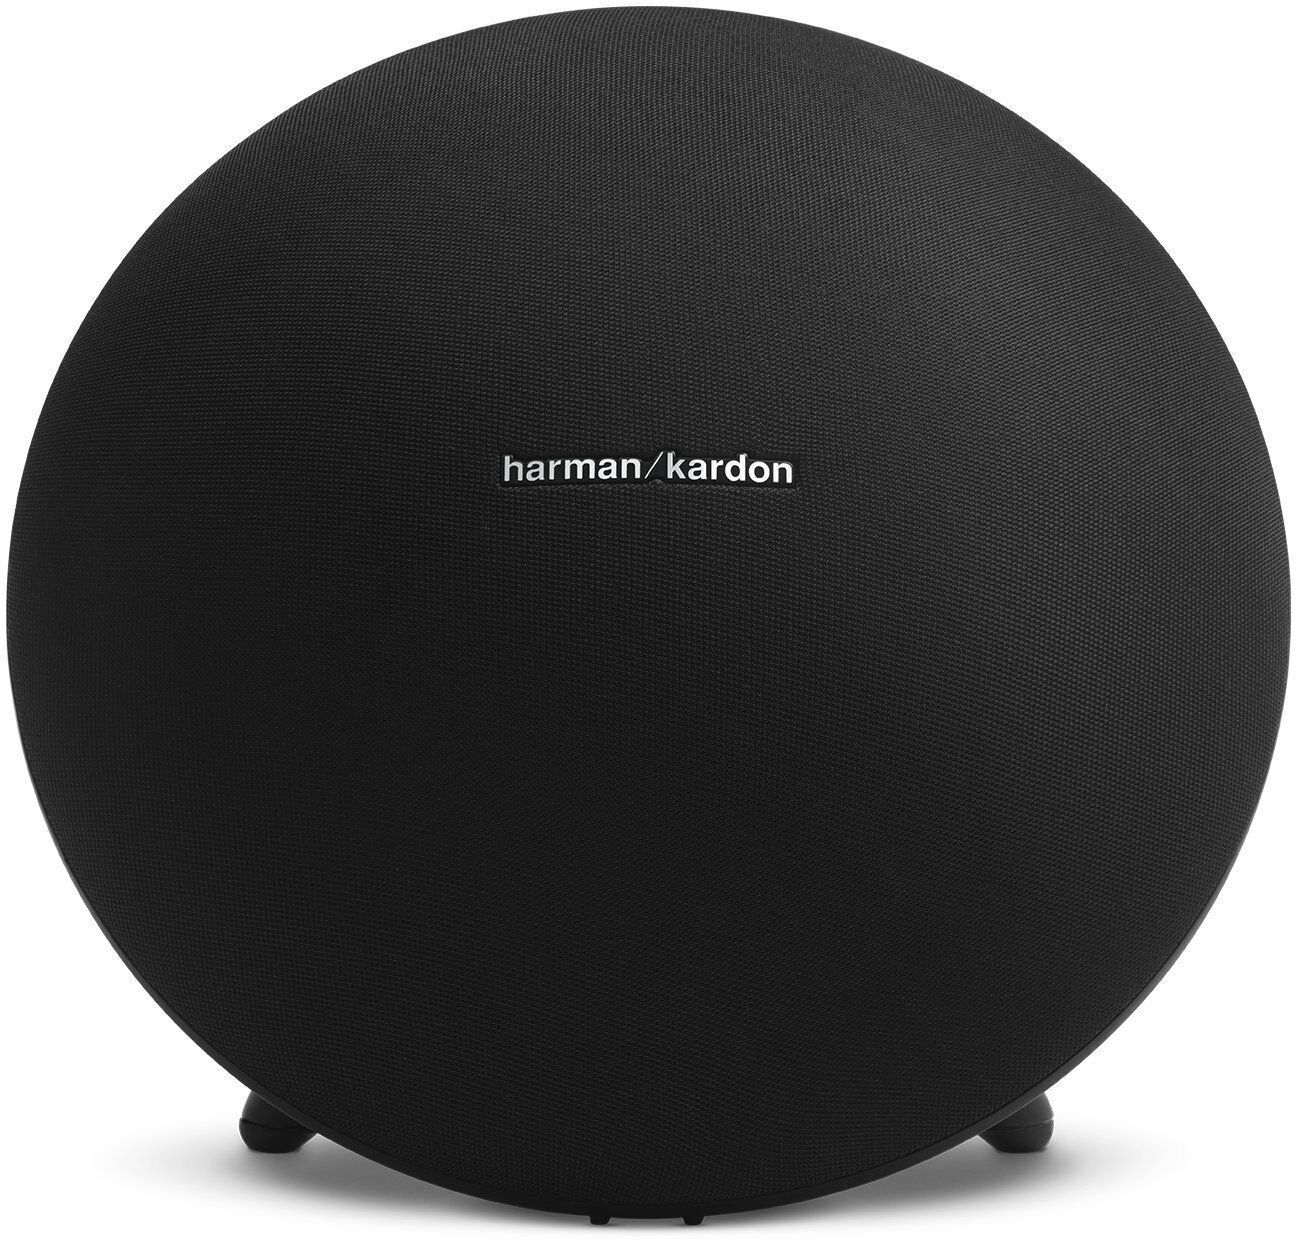 Harman Kardon Onyx Studio 4 Portable Bluetooth Speaker - Black HKOS4BLKAM